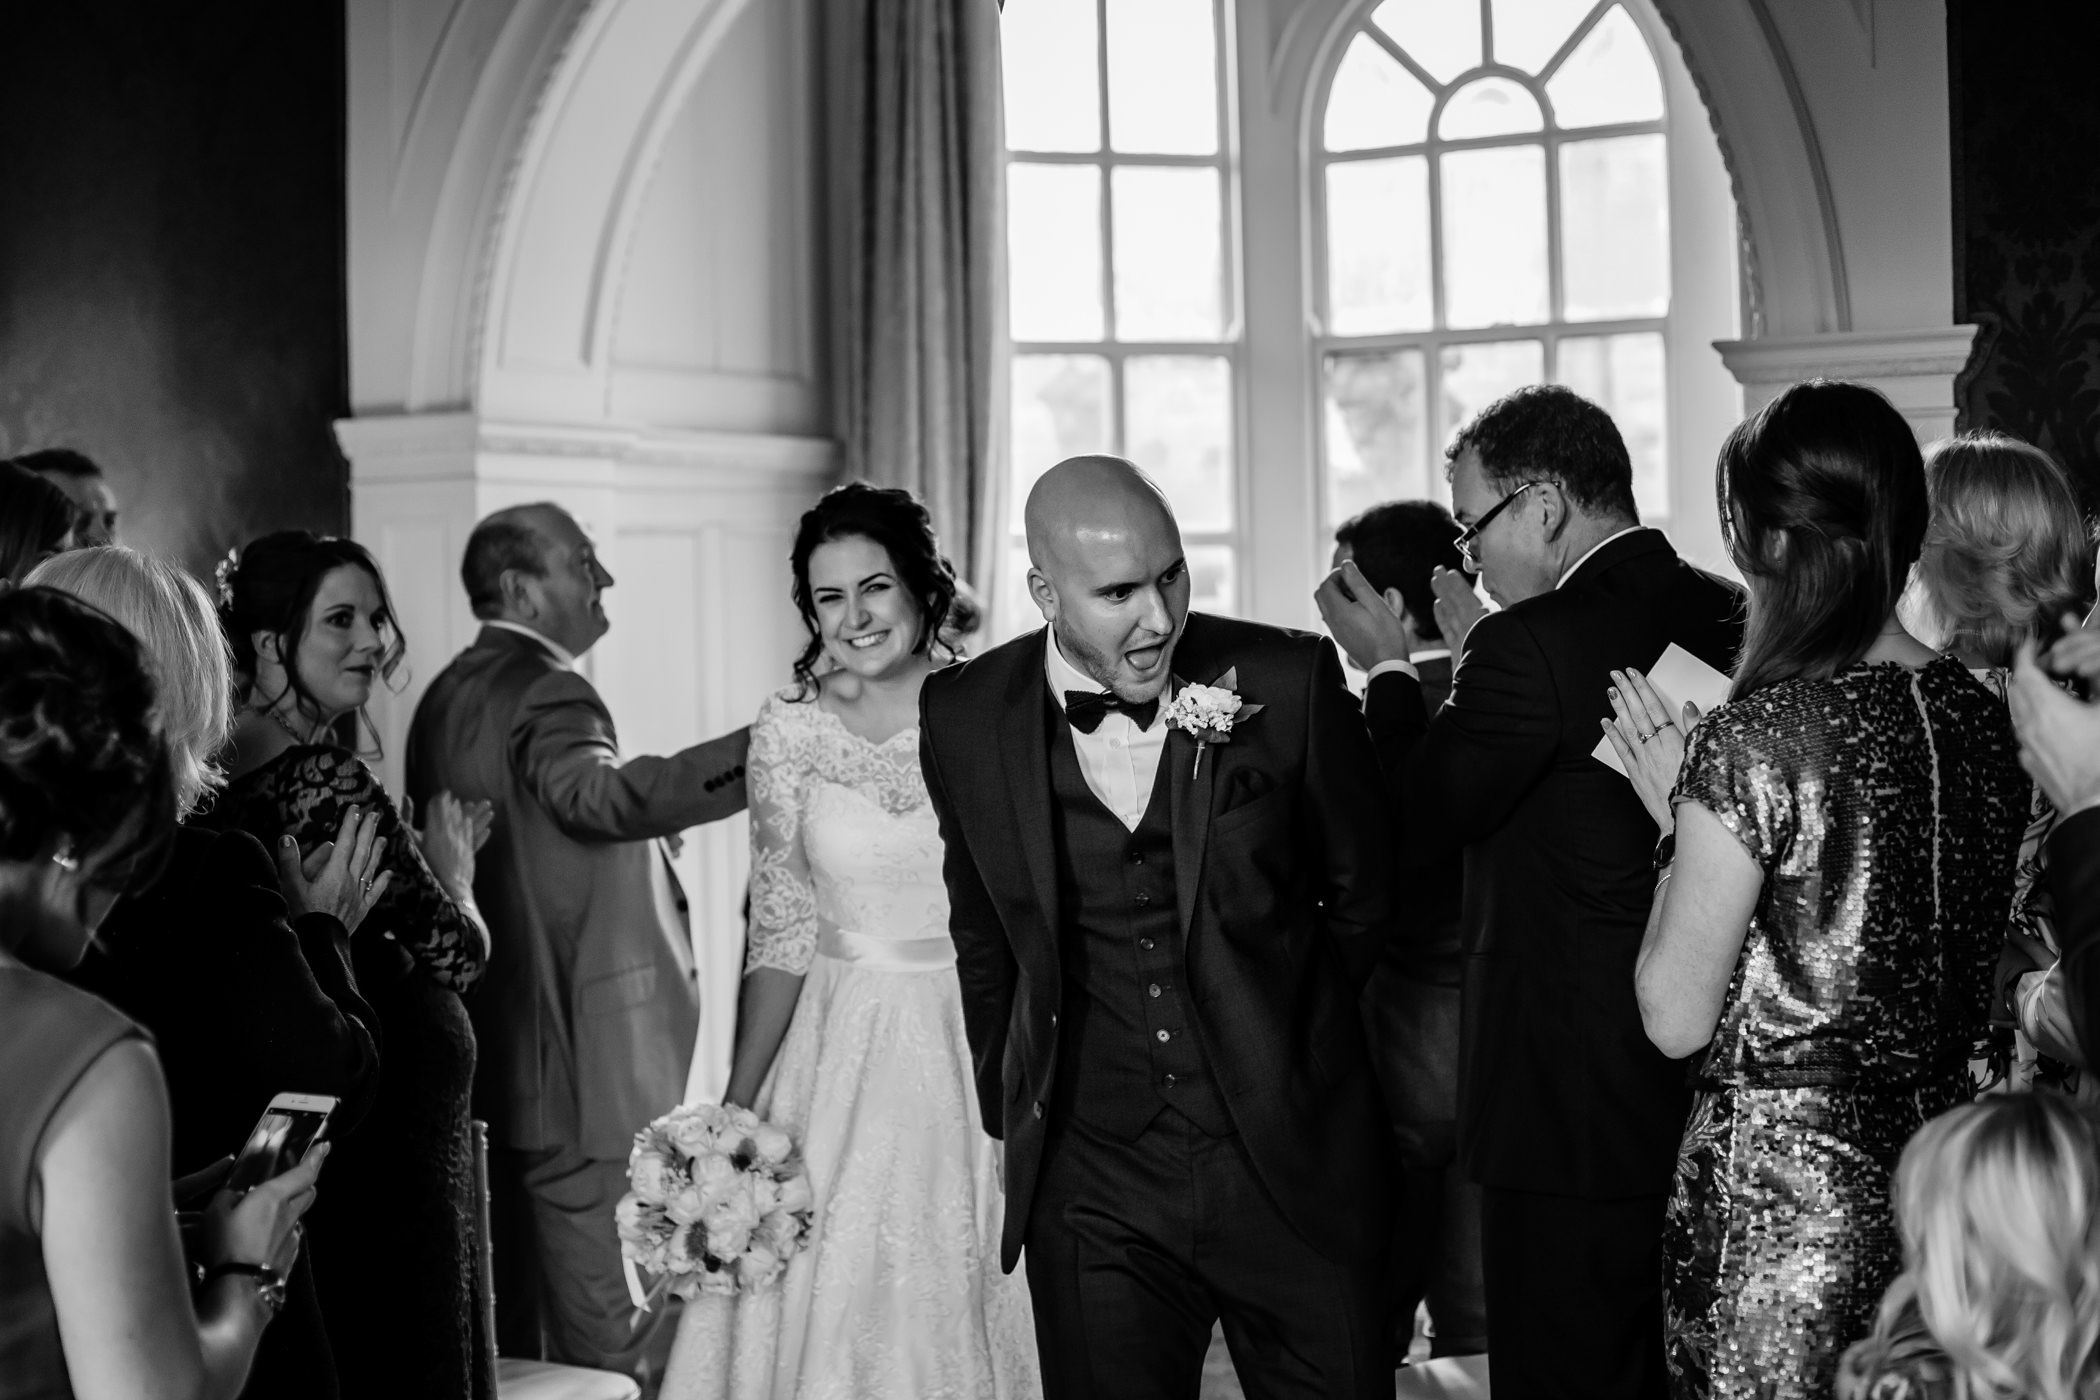 Georgie & steve - Sansom photography Grays Court York Wedding-17